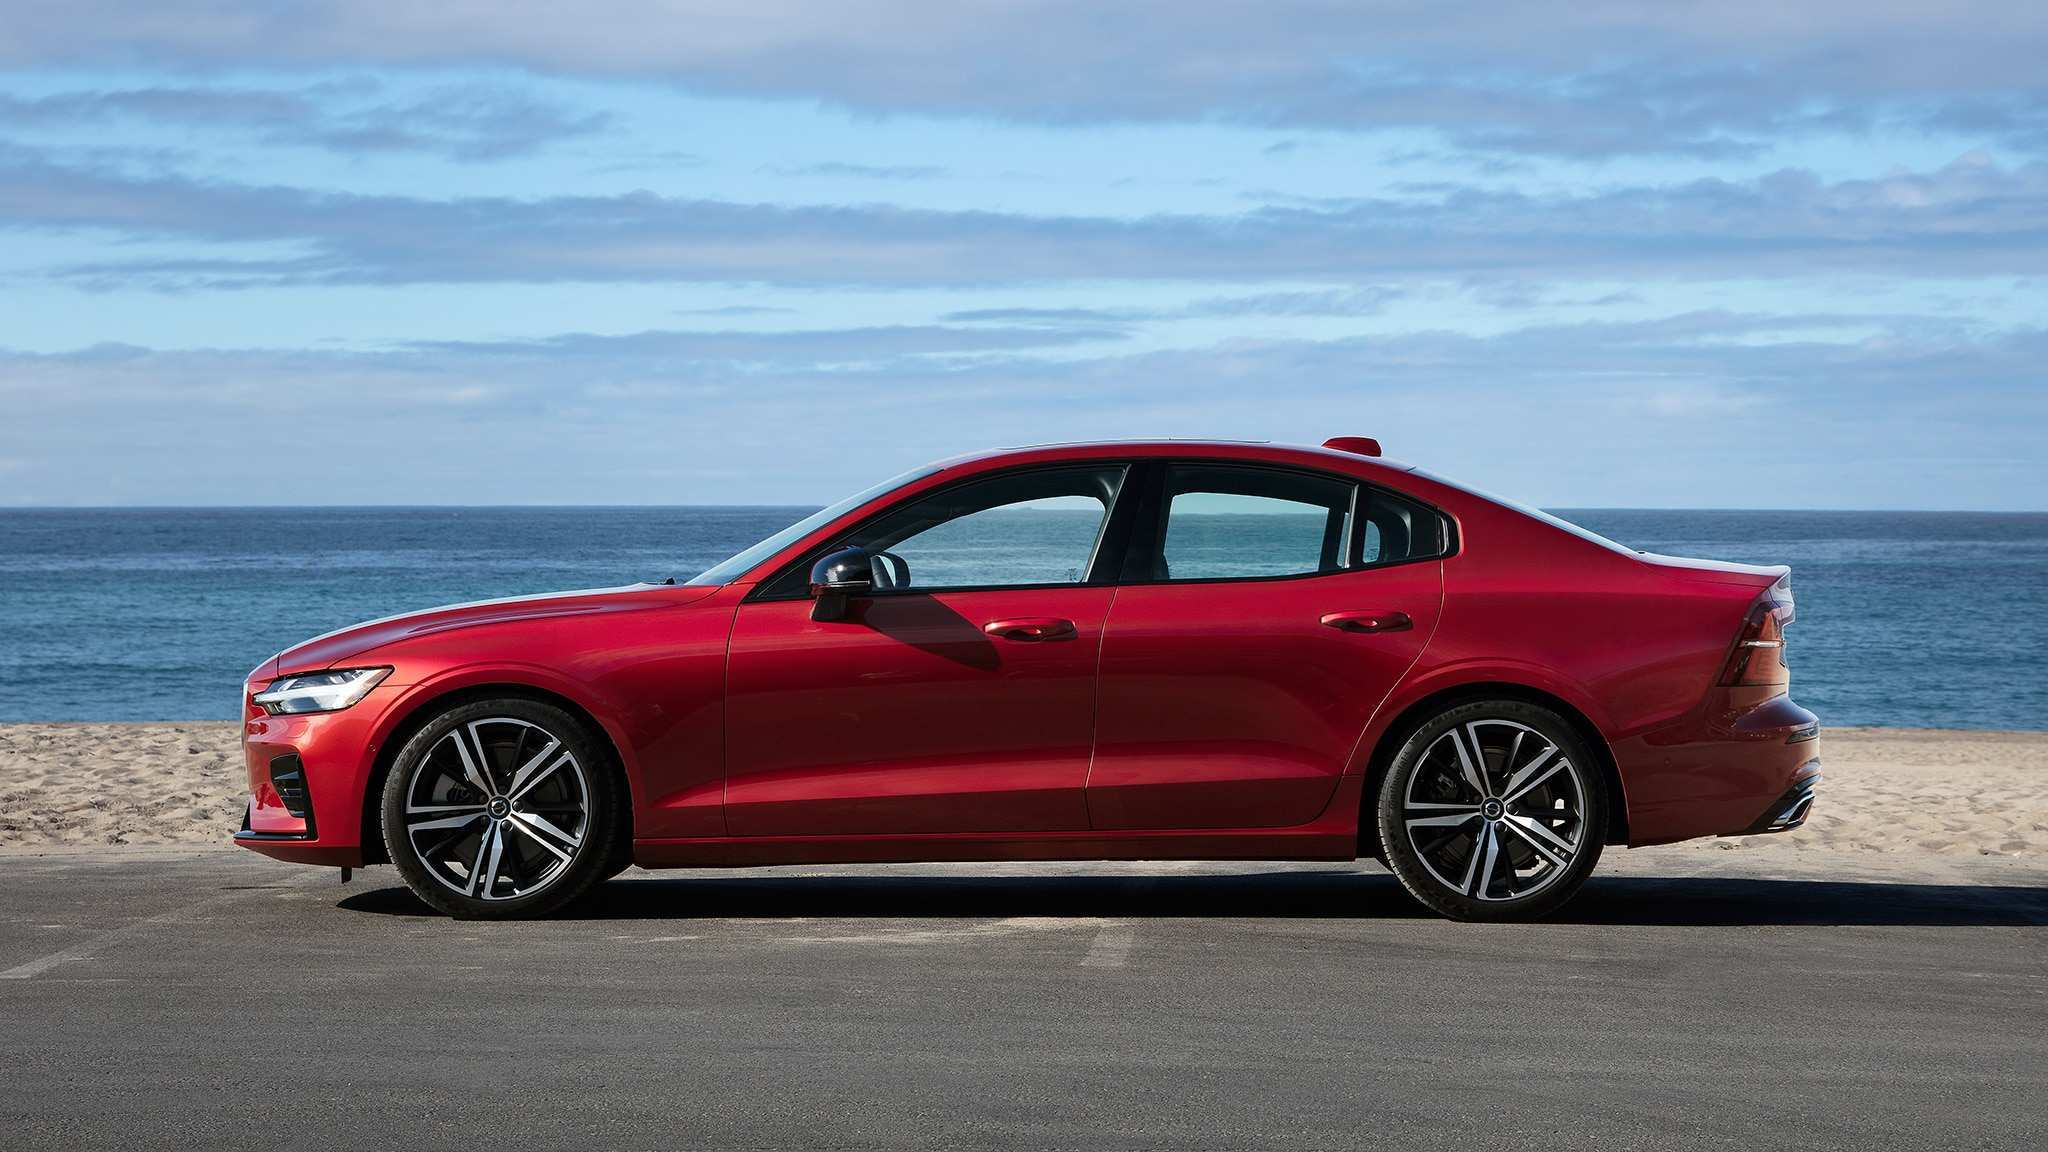 91 Great S60 Volvo 2019 Price with S60 Volvo 2019